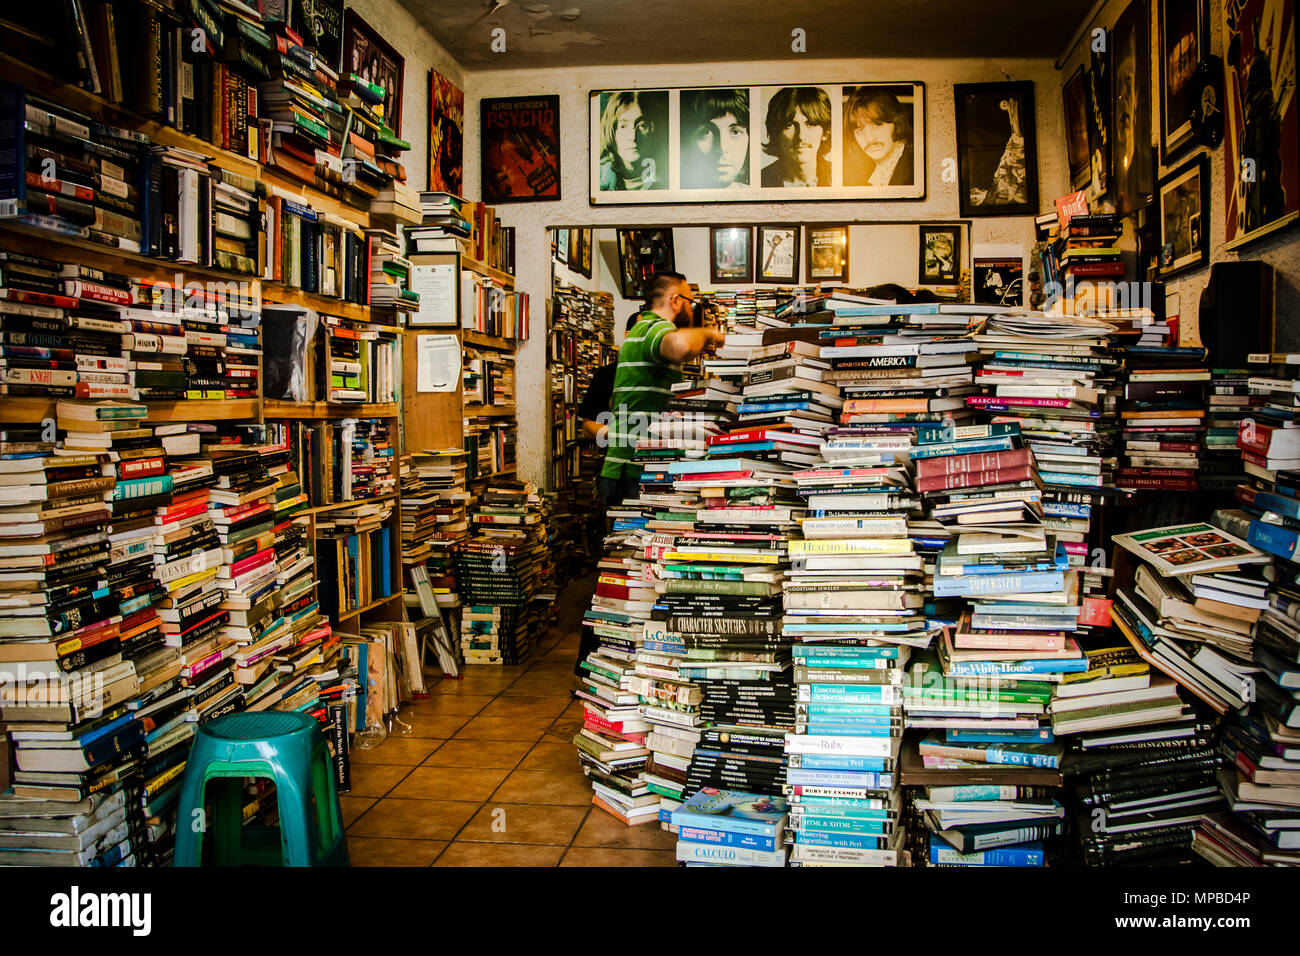 Book shop in San Jose, Costa Rica with piles of books stuffed on shelves and on the ground. In the backround you see  portraits of the Beatles. - Stock Image